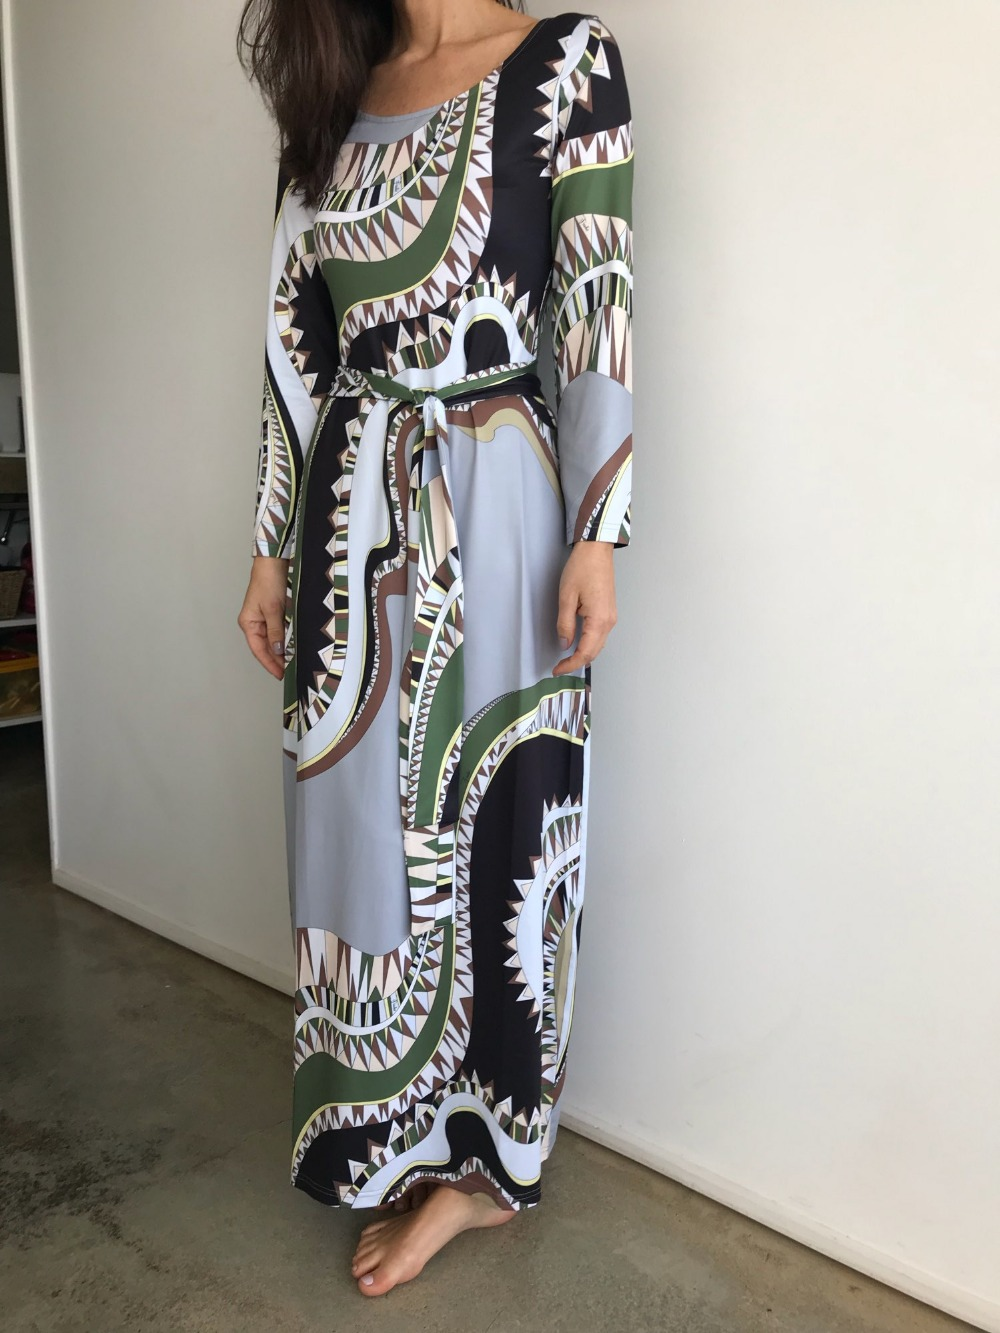 a98c6ea6bc62 Φορέματα New Women's Luxury Brands Vintage Jersey Silk Dress Long Sleeve  Bohemia Printed Bodycon Spandex Stretchable Signature Maxi Dress